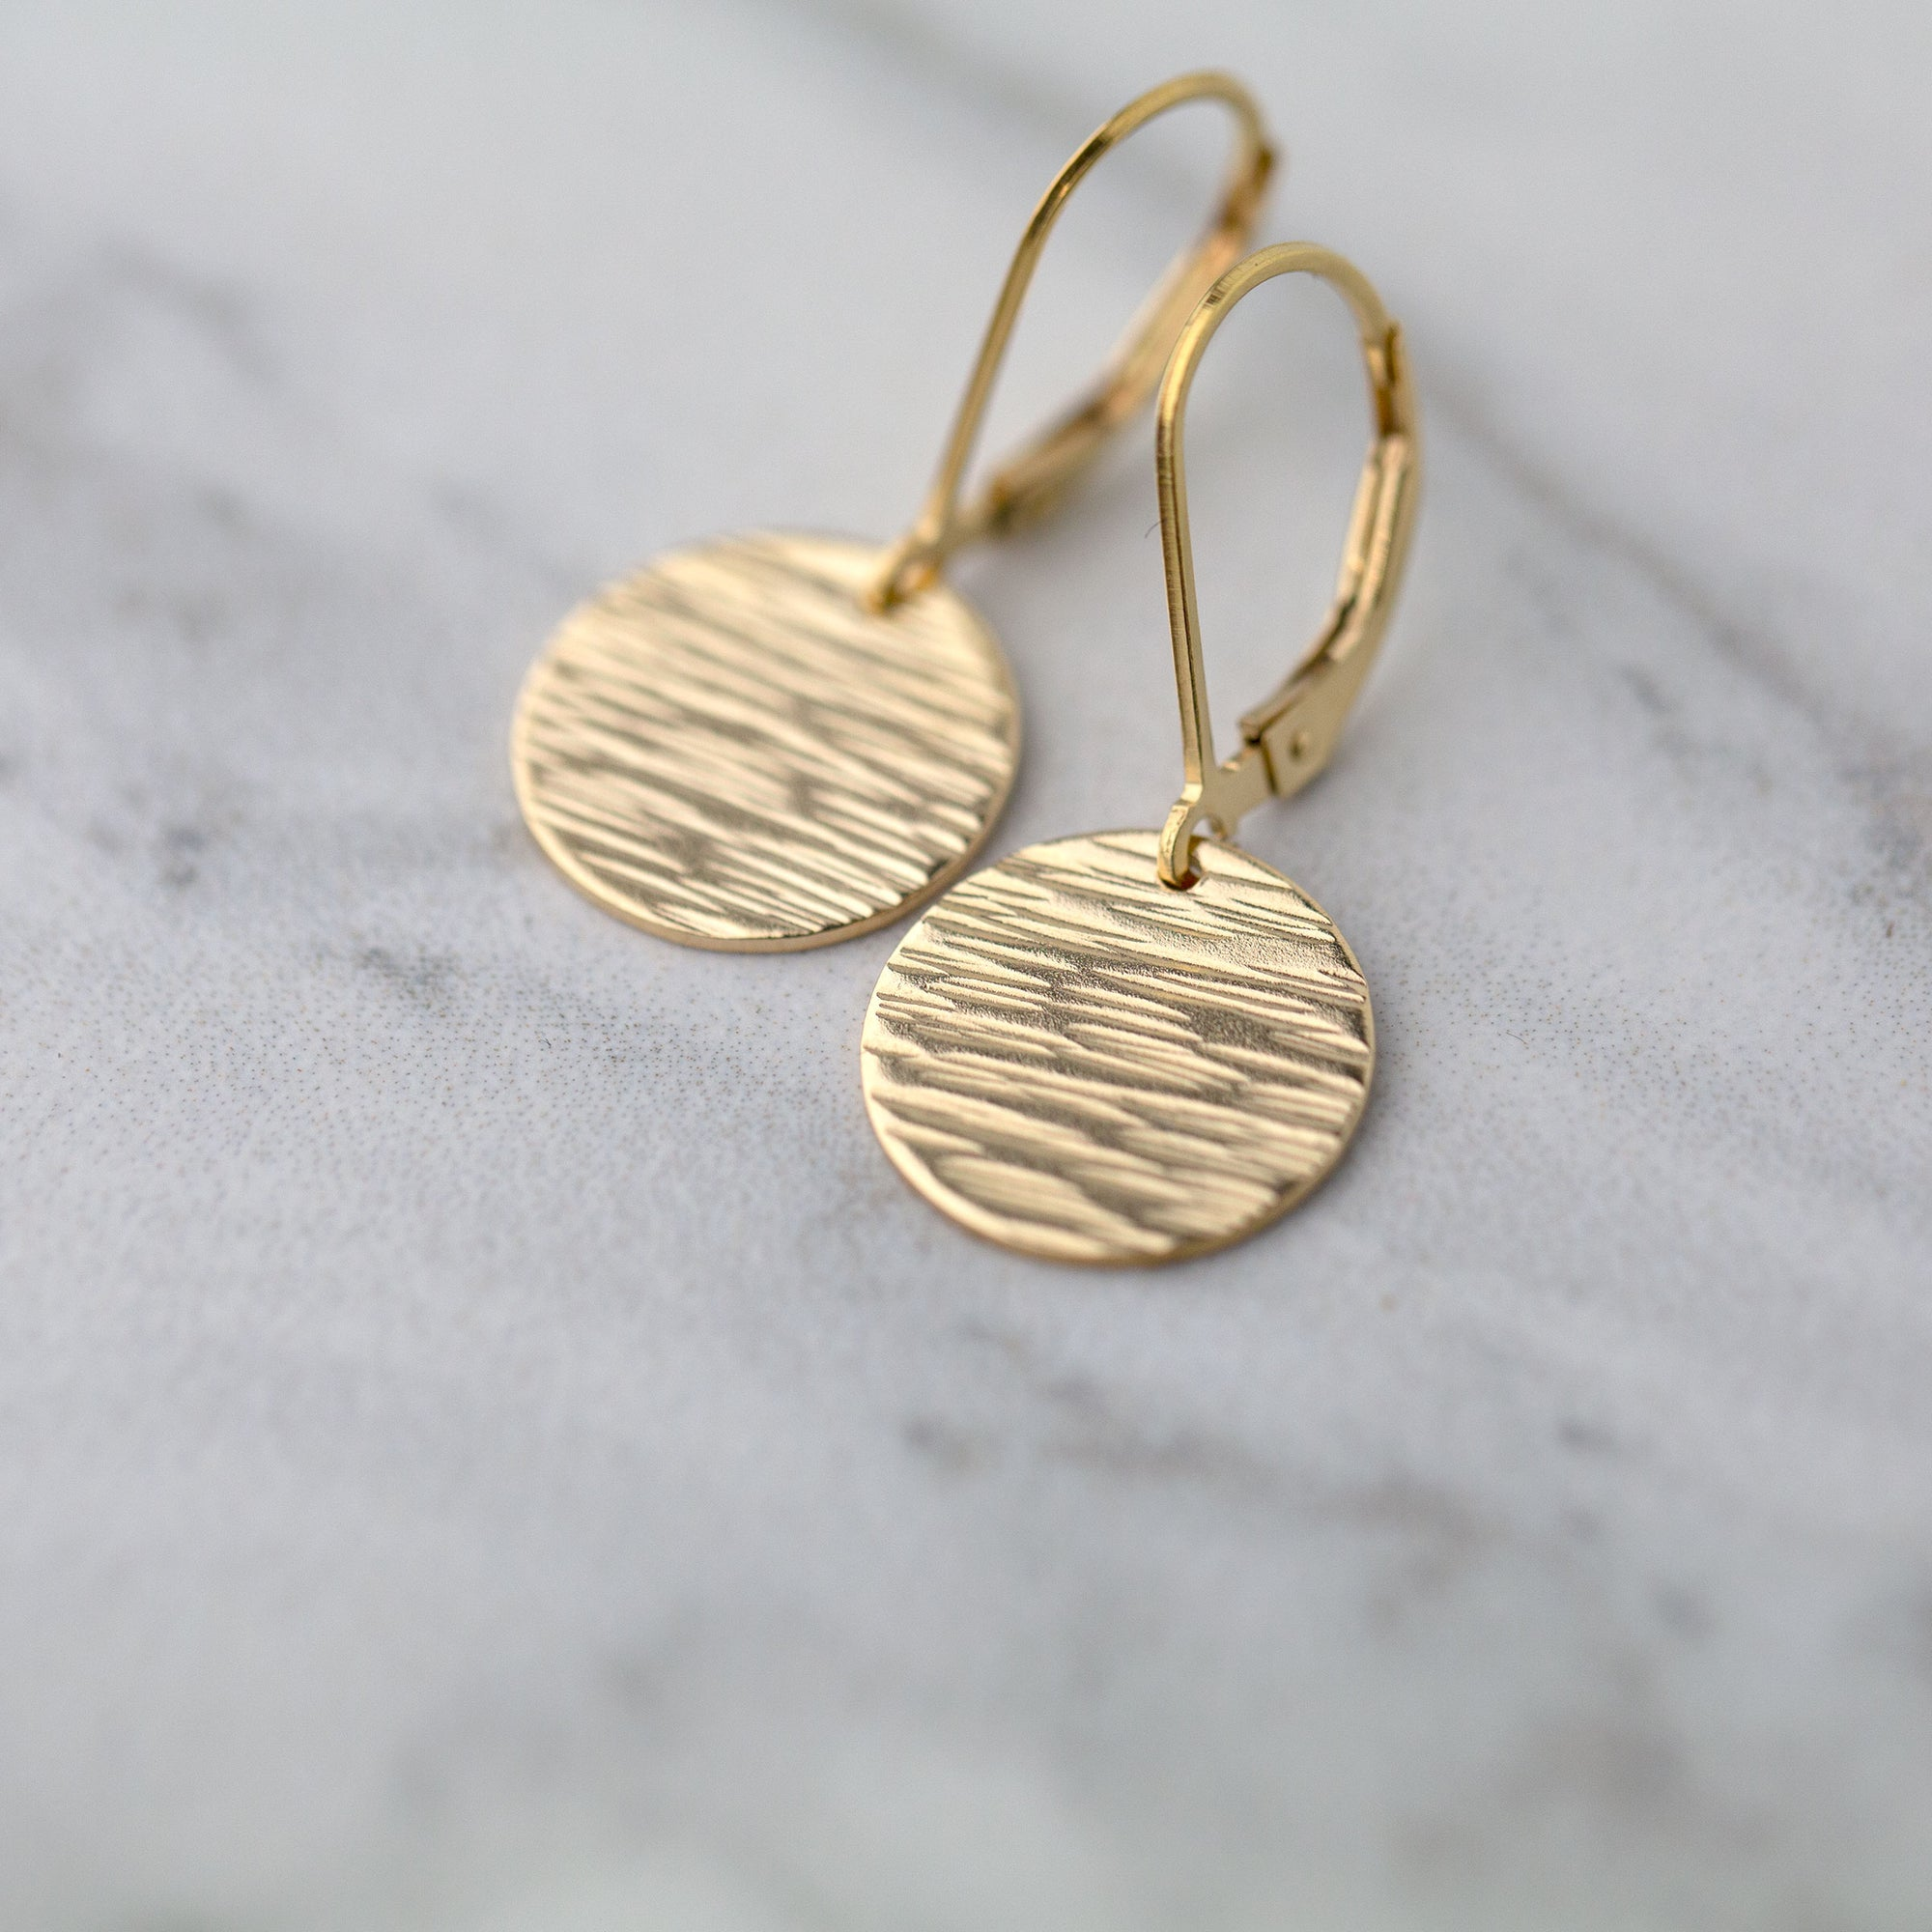 Medium Gold Hammered Bark Lever-back Earrings